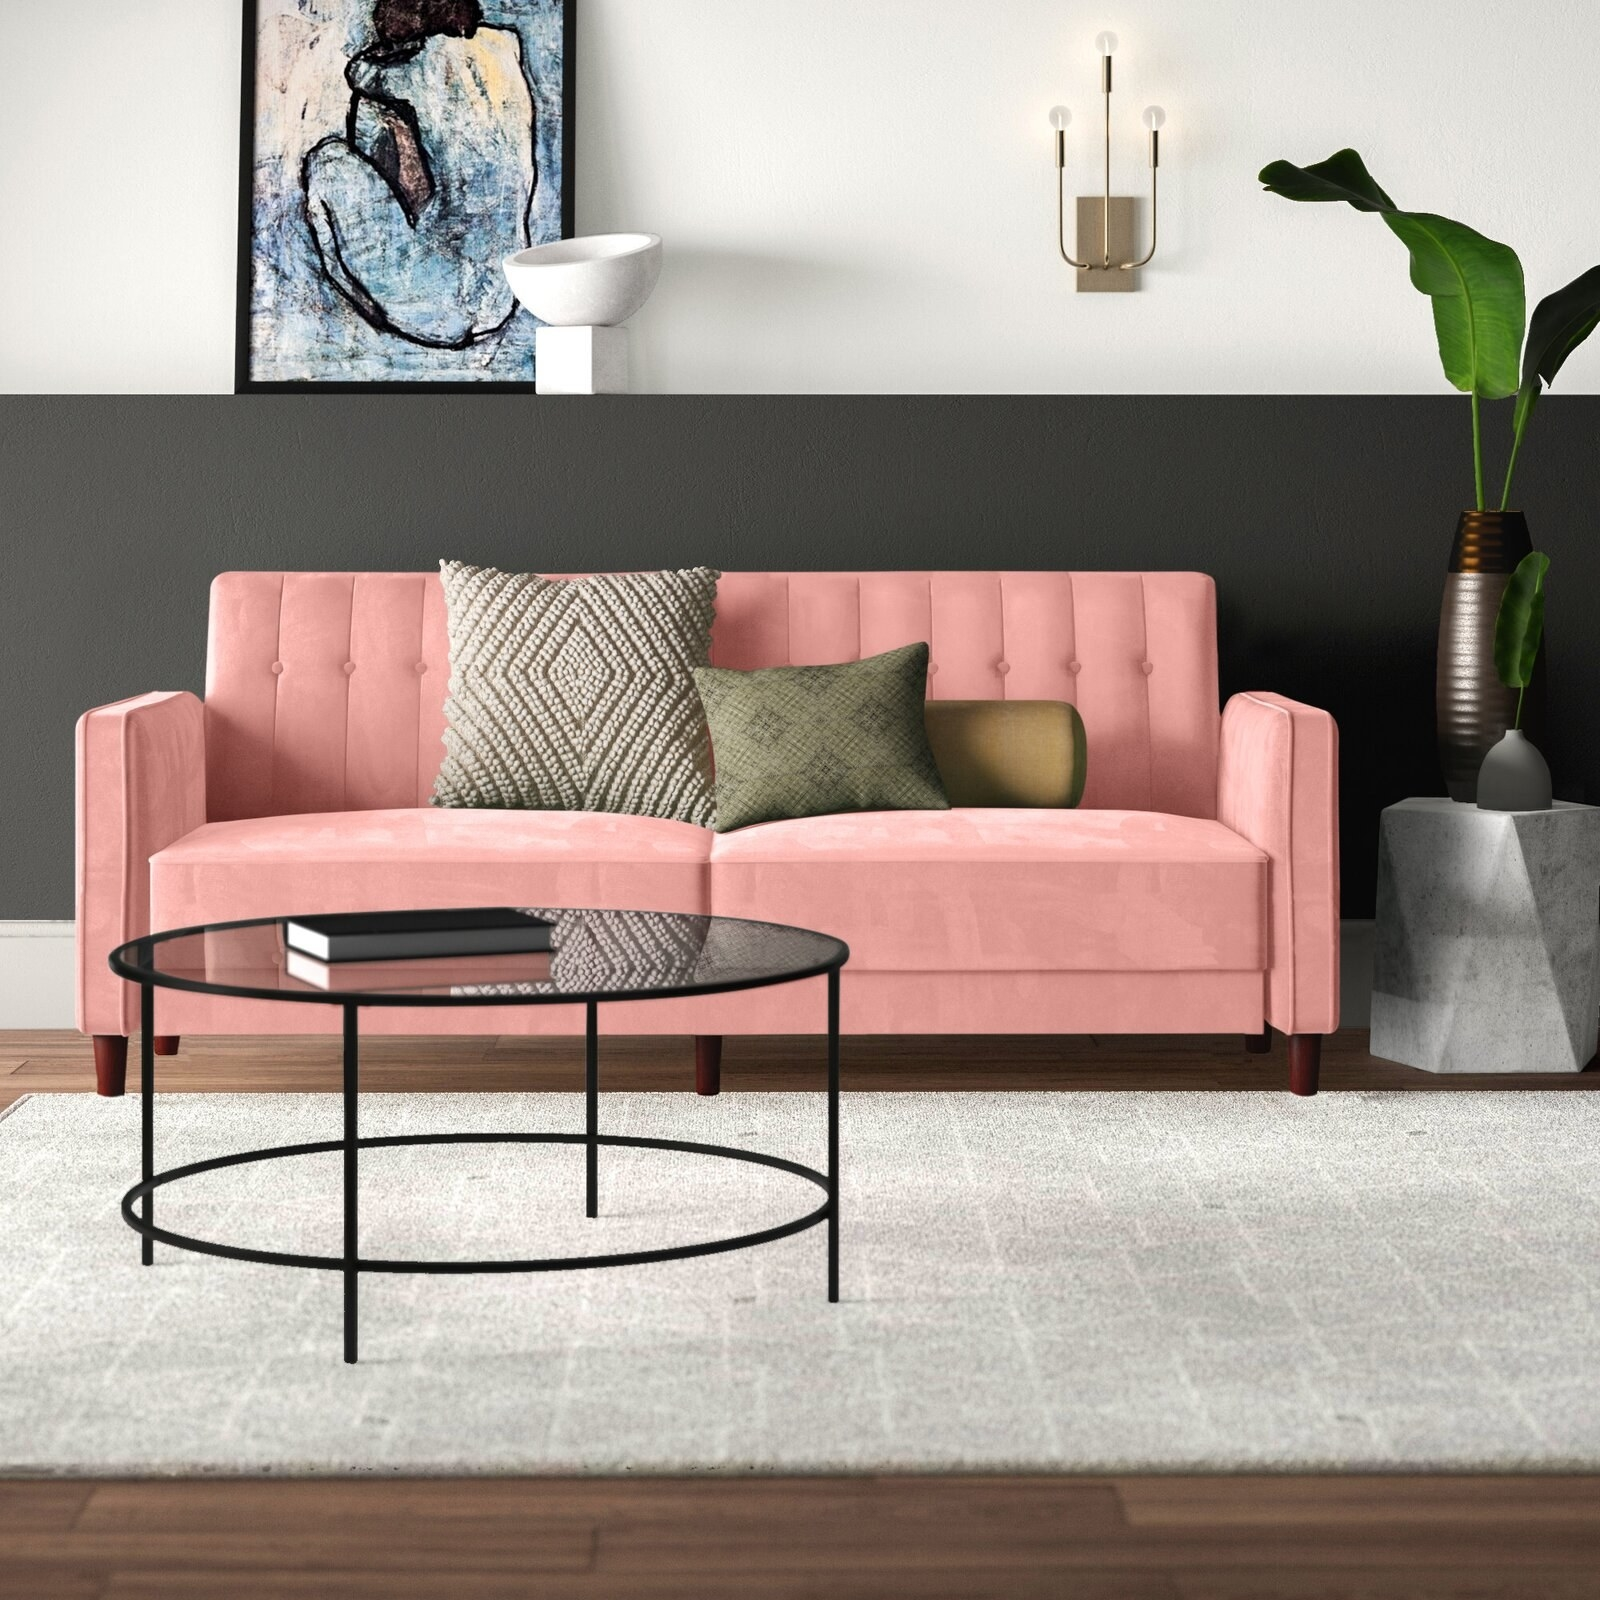 The couch, which has square arms and back, in pink